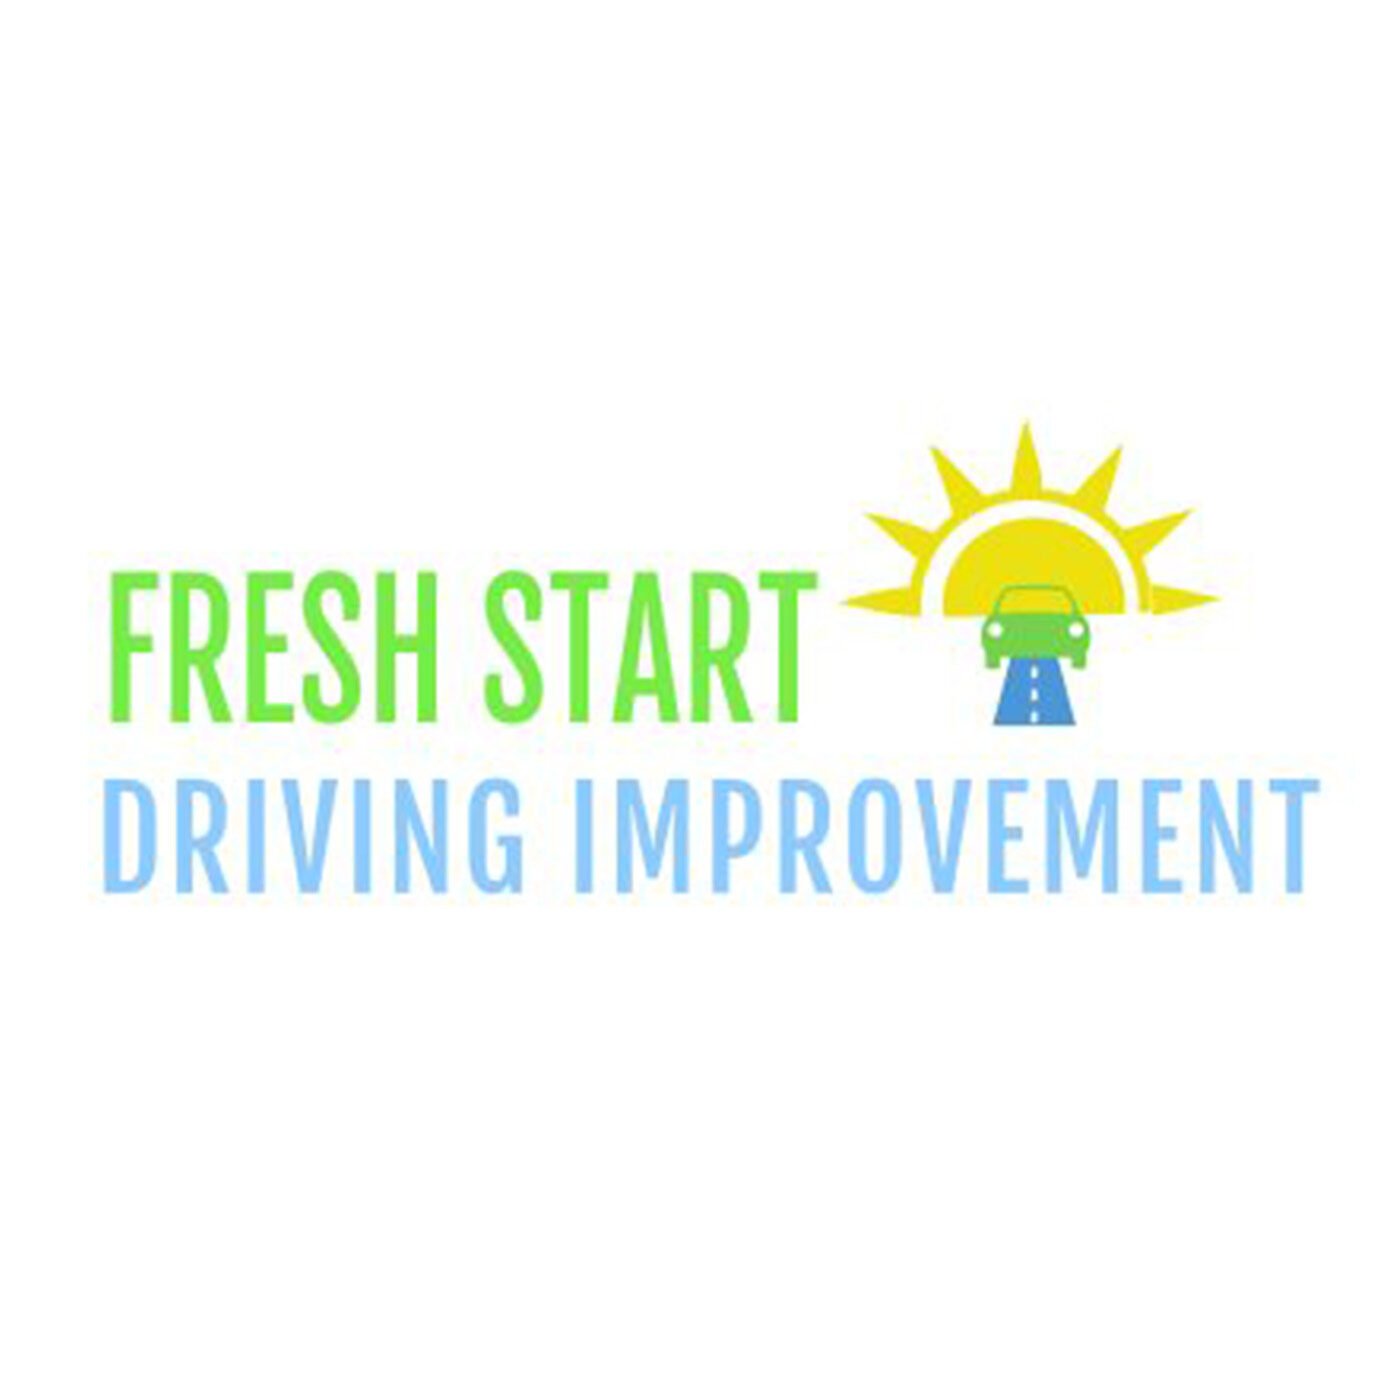 Fresh Start Driving Improvement